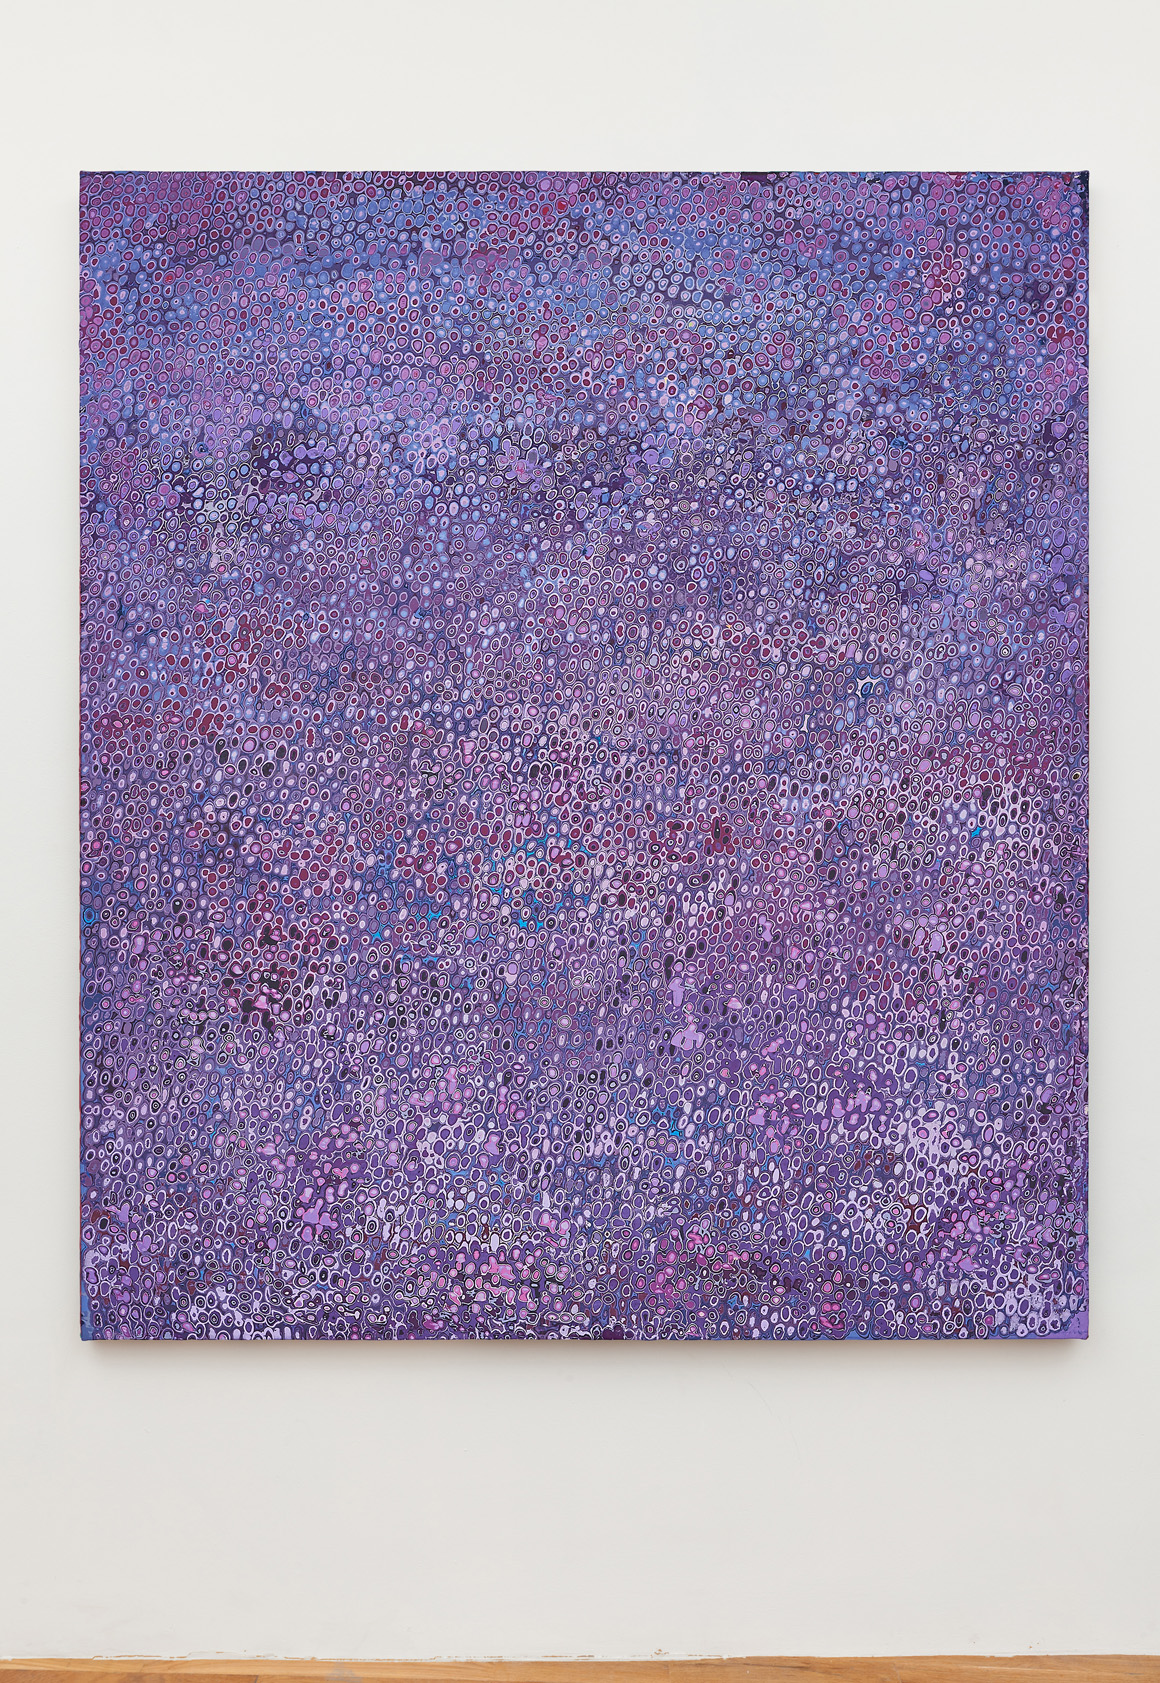 "<p><span class=""name"">Andrew Jensdotter</span><br><em>Purple 101</em><span class='media'>Carved latex on canvas</span>80 x 68 in (203.2 x 172.7 cm)<br>2018<br></p>"